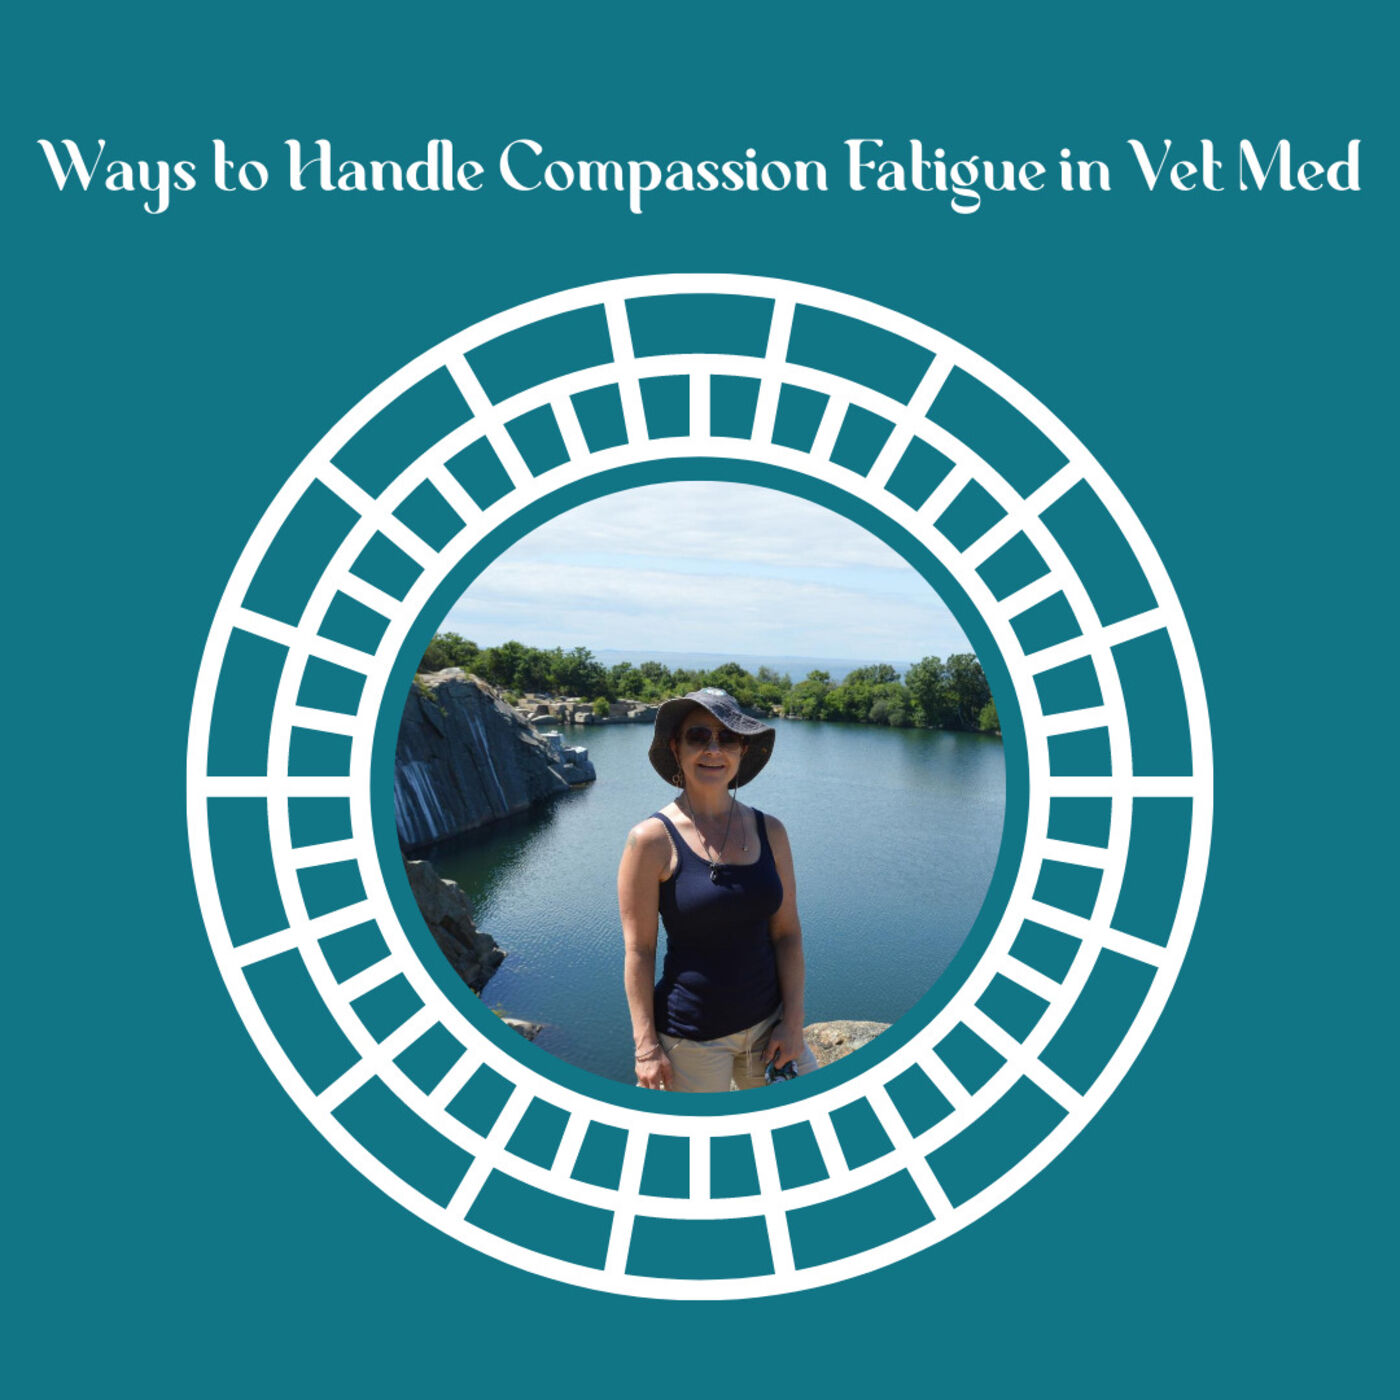 Ways to Handle Compassion Fatigue in Vet Med featuring Julie Squires